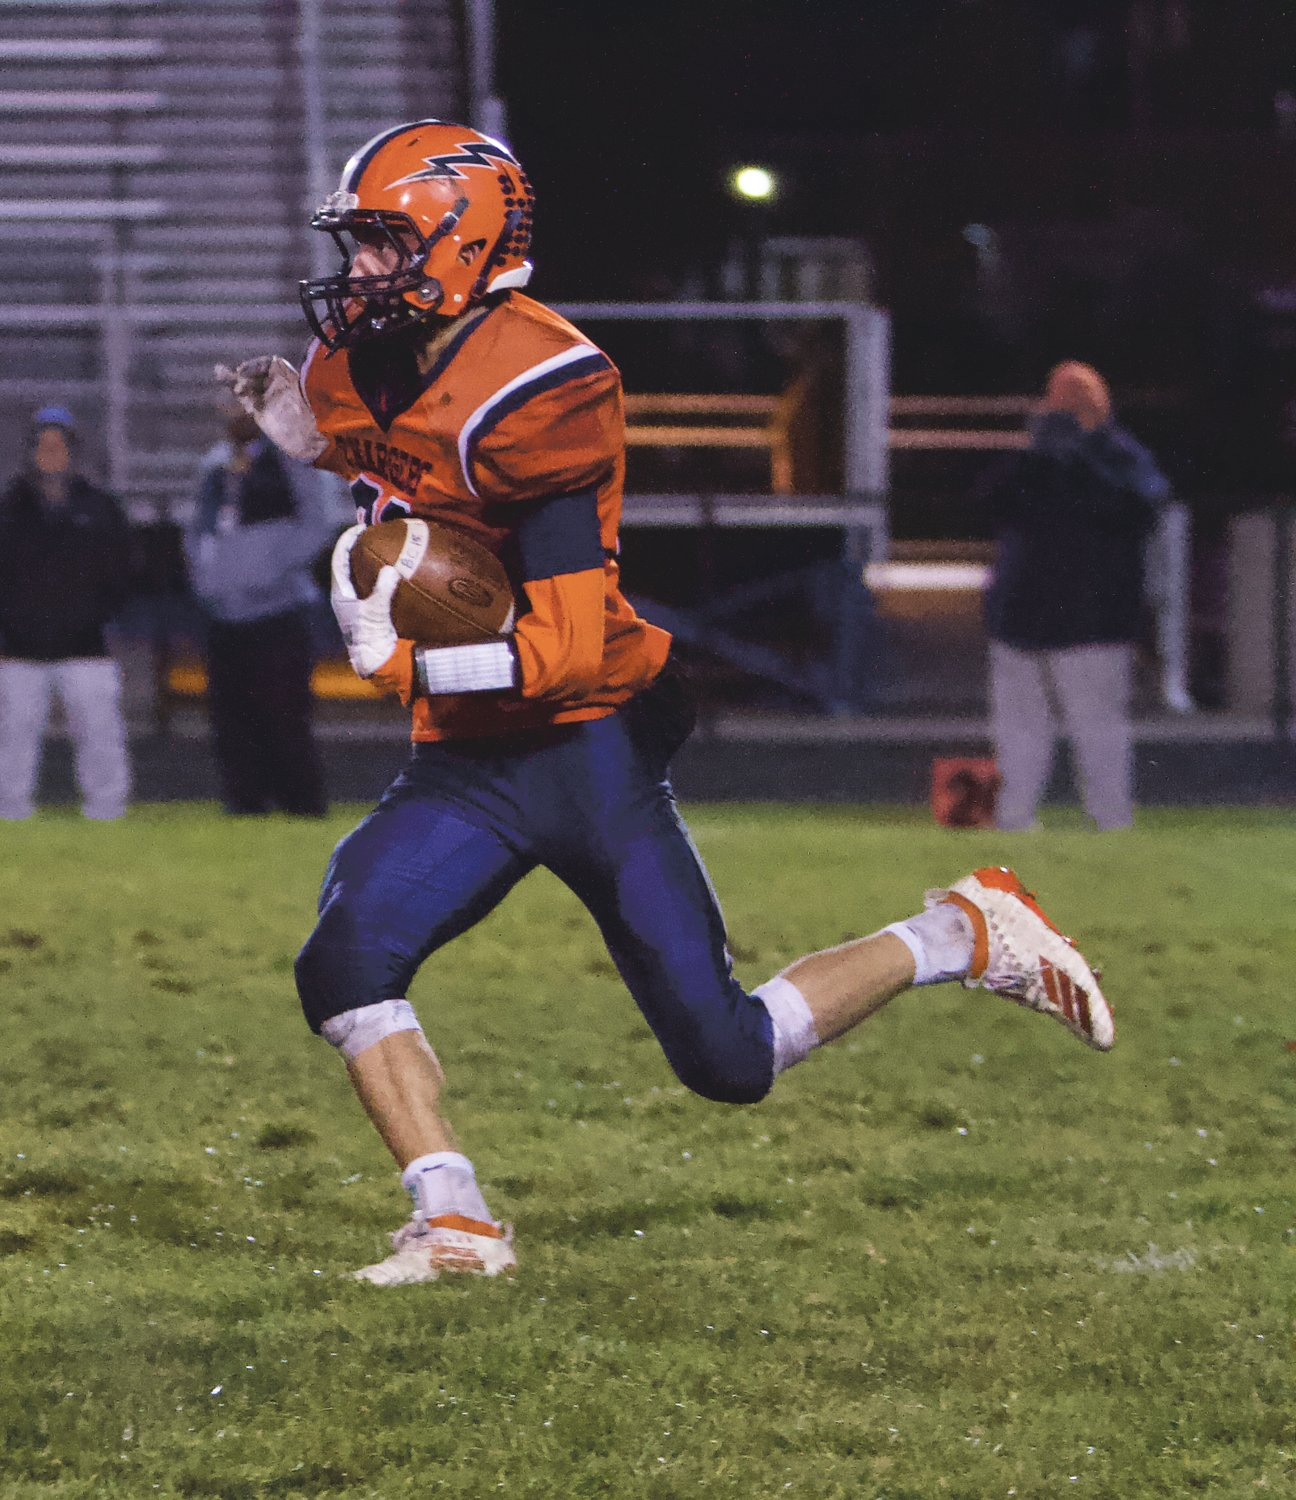 North Montgomery's Kade Kobel caught six passes for 73 yards in the Chargers 49-12 loss.